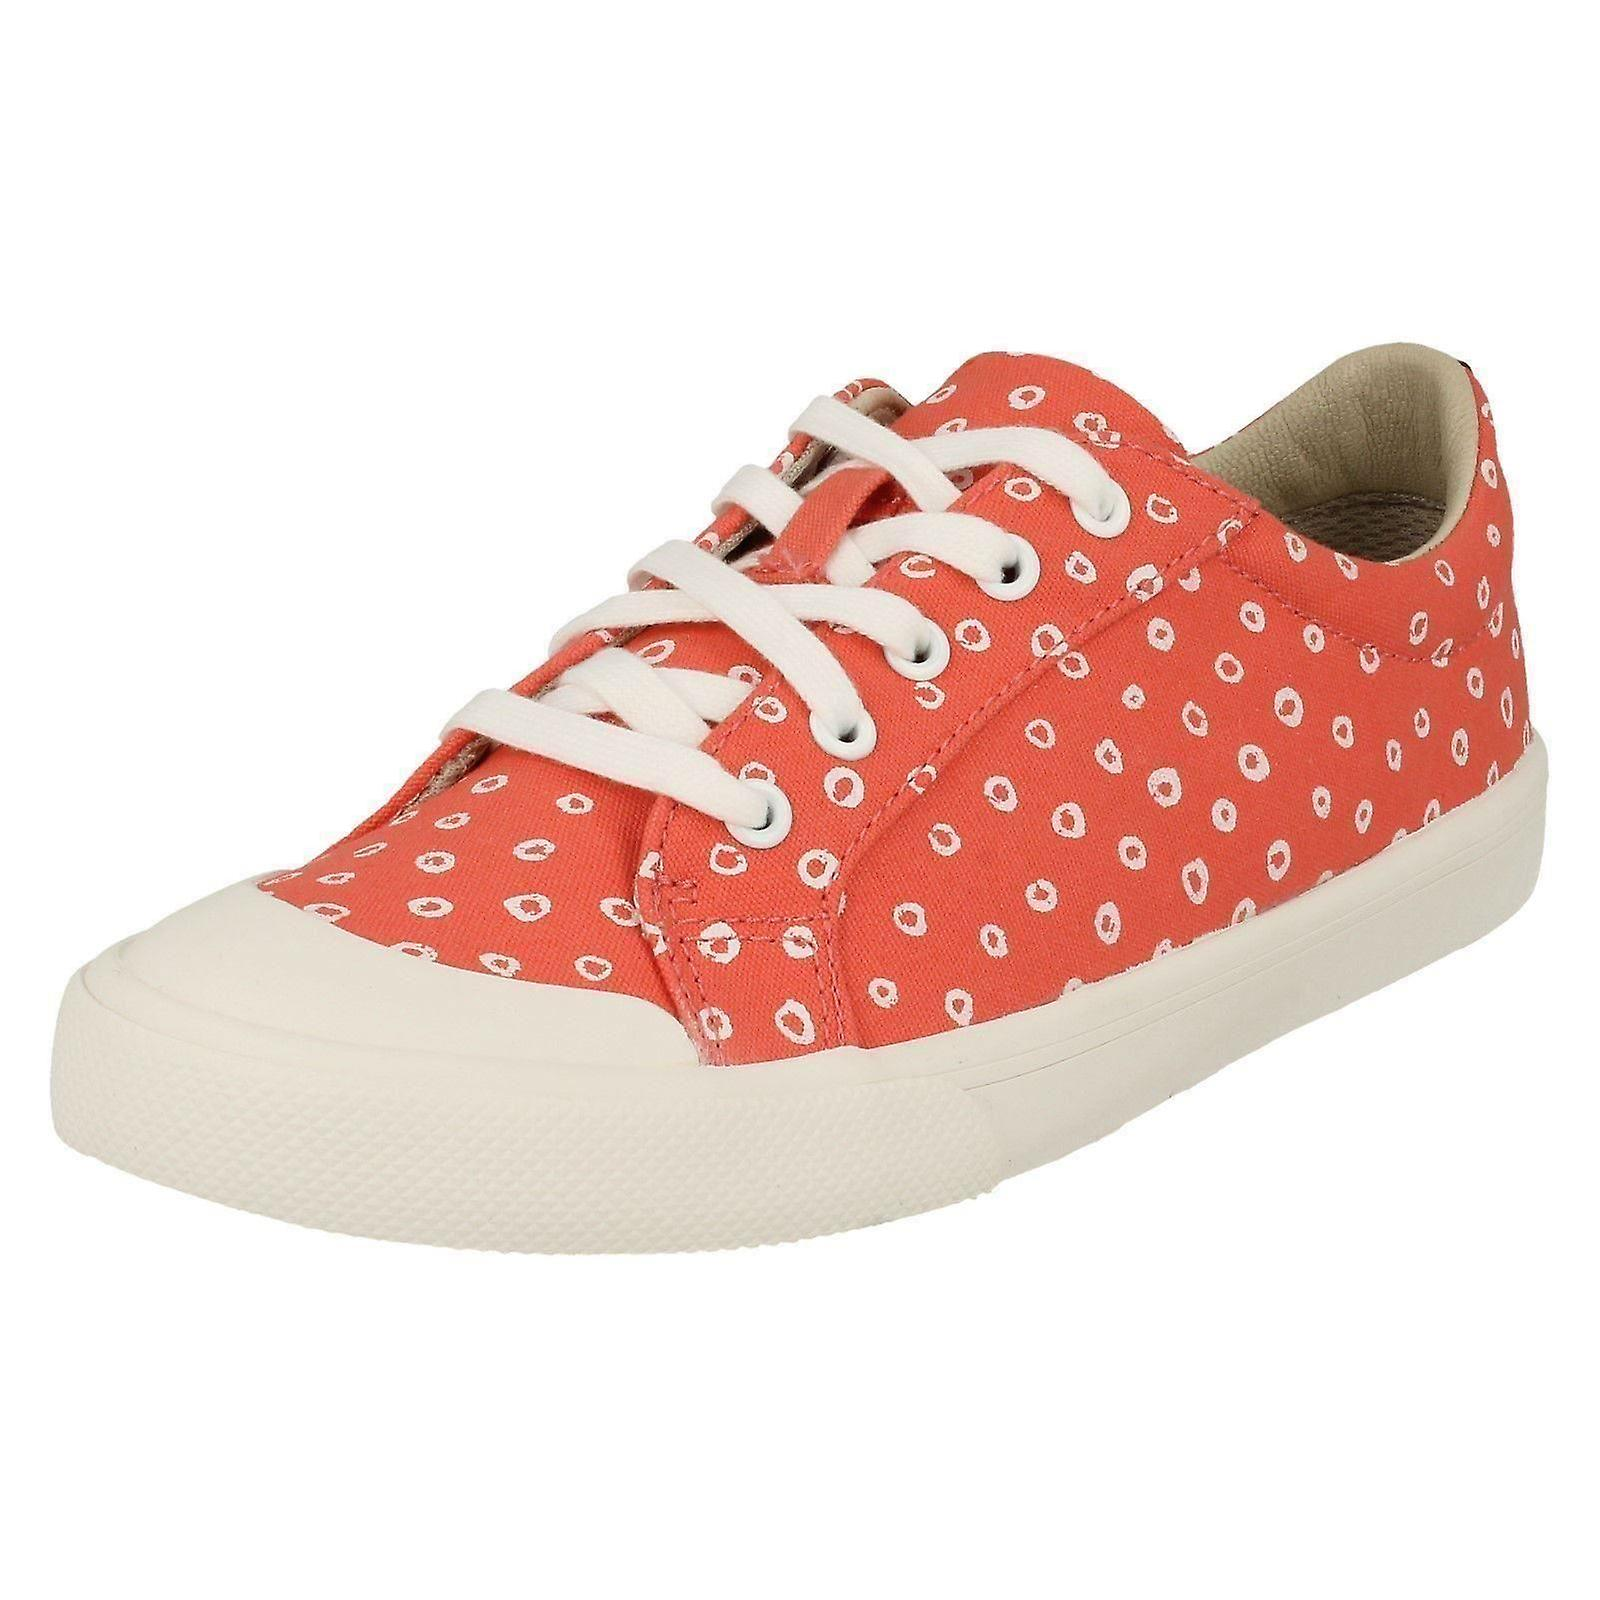 Madchen Clarks Casual Canvas Schuhe Comic Tage Fruugo